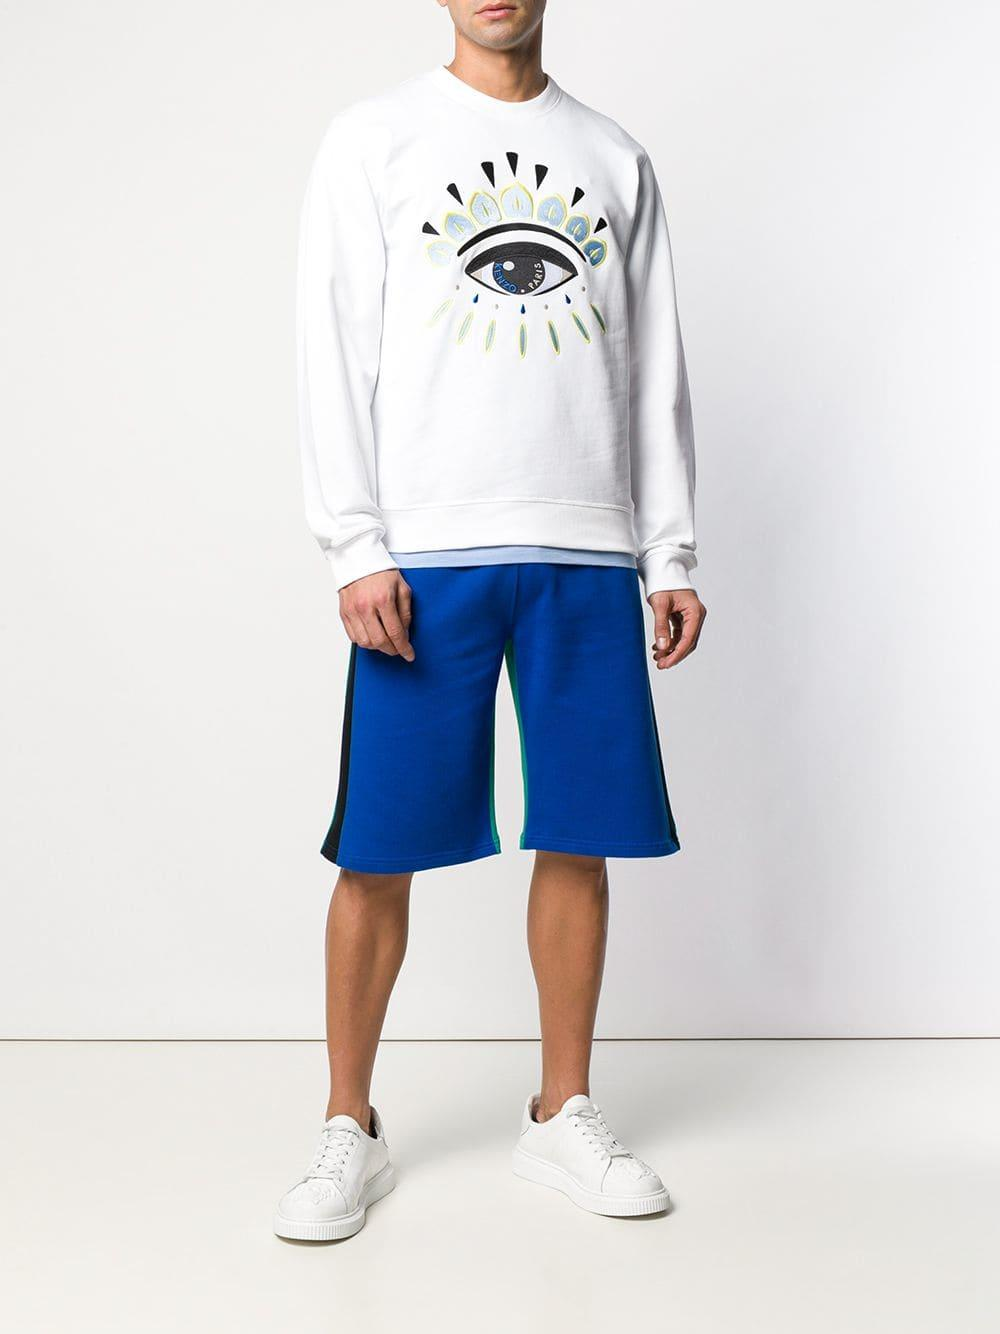 0c5ebe85b Lyst - KENZO Embroidered Eye Sweatshirt in White for Men - Save  4.803493449781655%